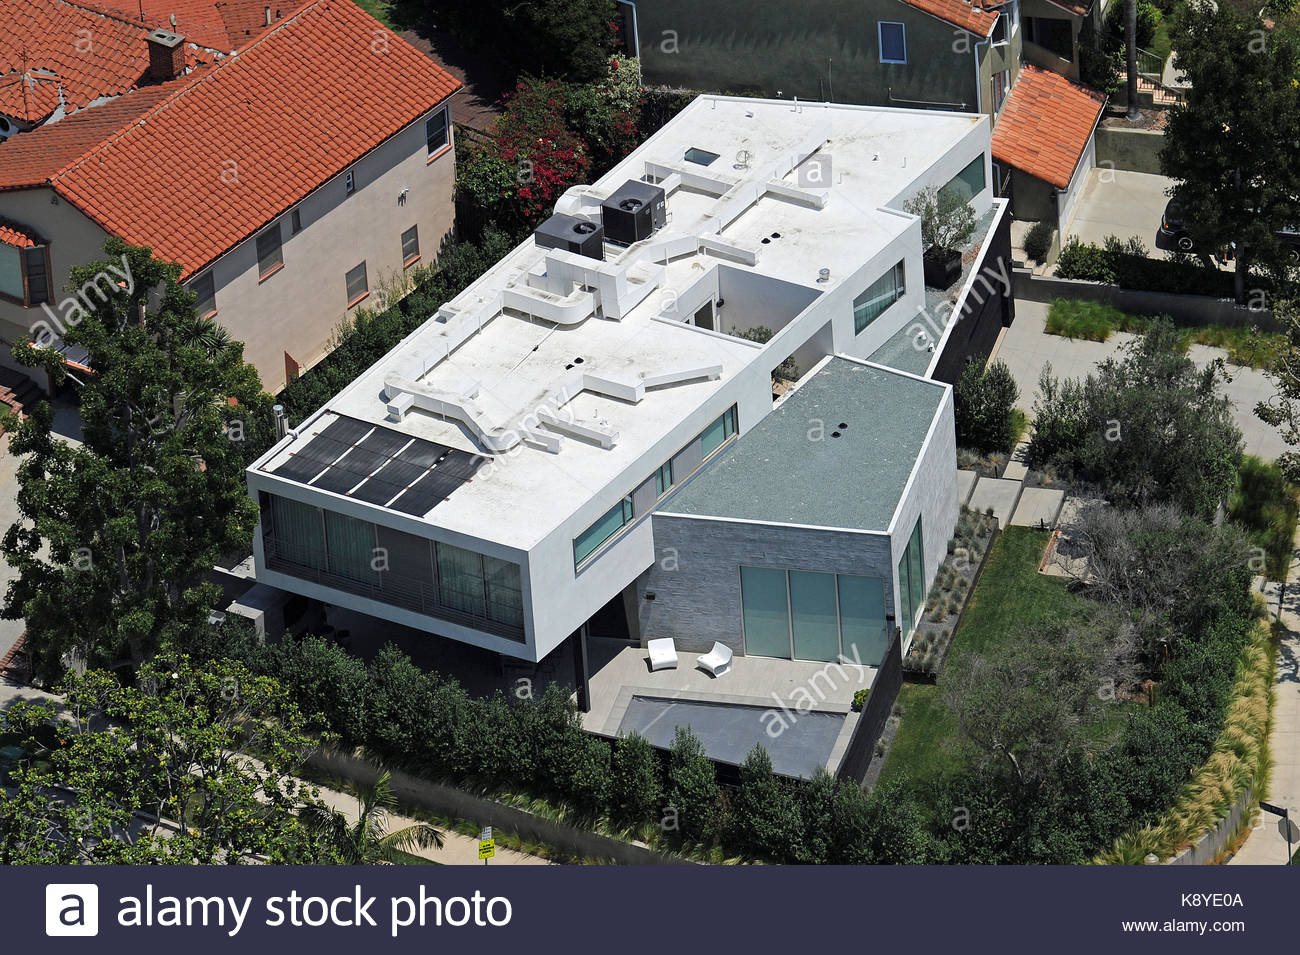 Travis Barkeru0027s New Home In Cheviot Hills, Los Angeles, California. The  Rock Star Paid $4 Million For The Four Bedroom, Four Bathroom Contemporary  Home Near ...